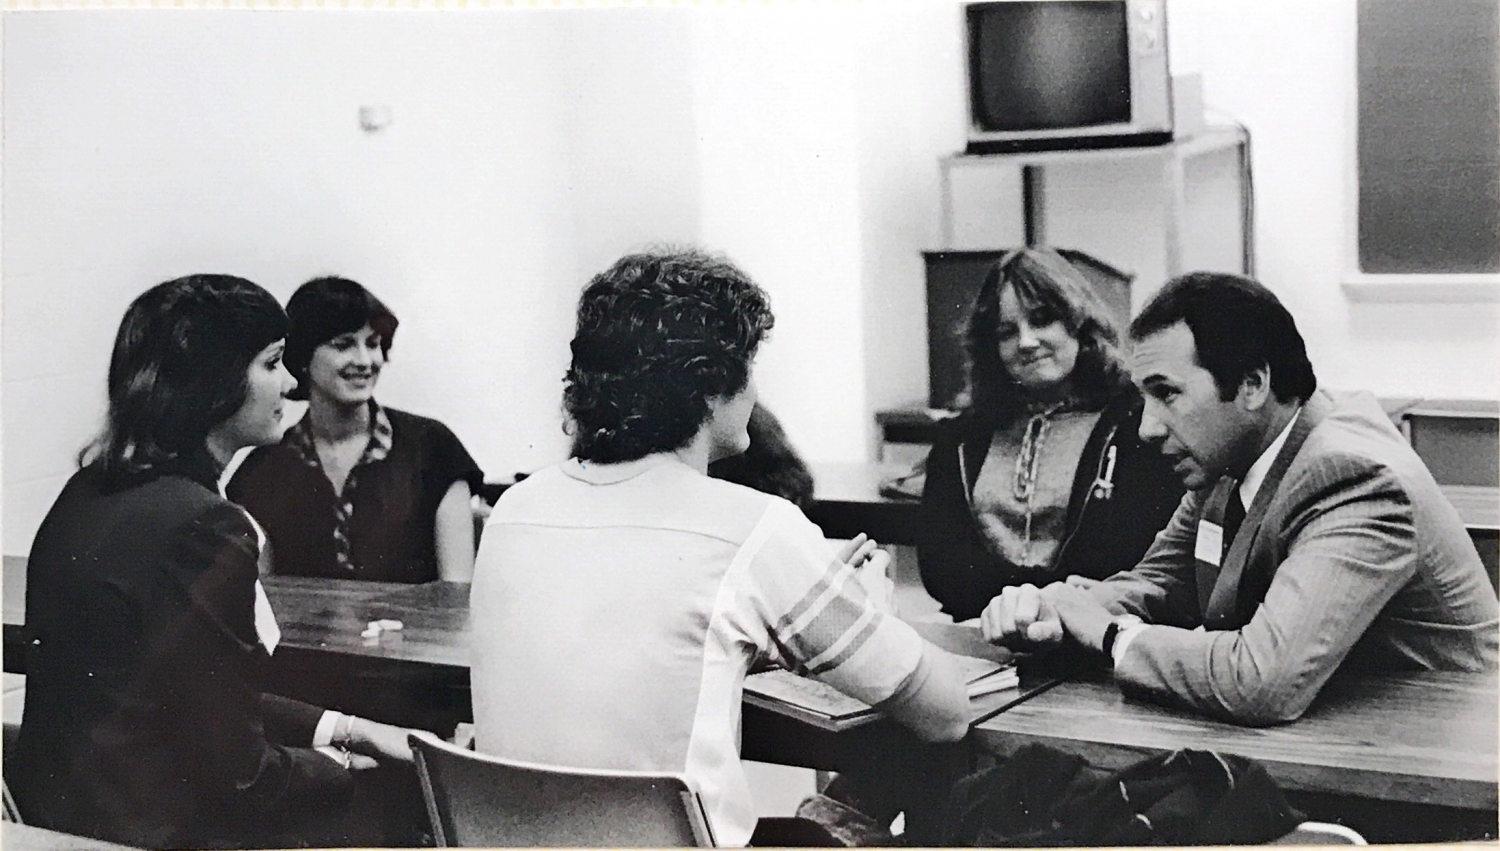 Meet the Firms event at Bowling Green State University in 1980